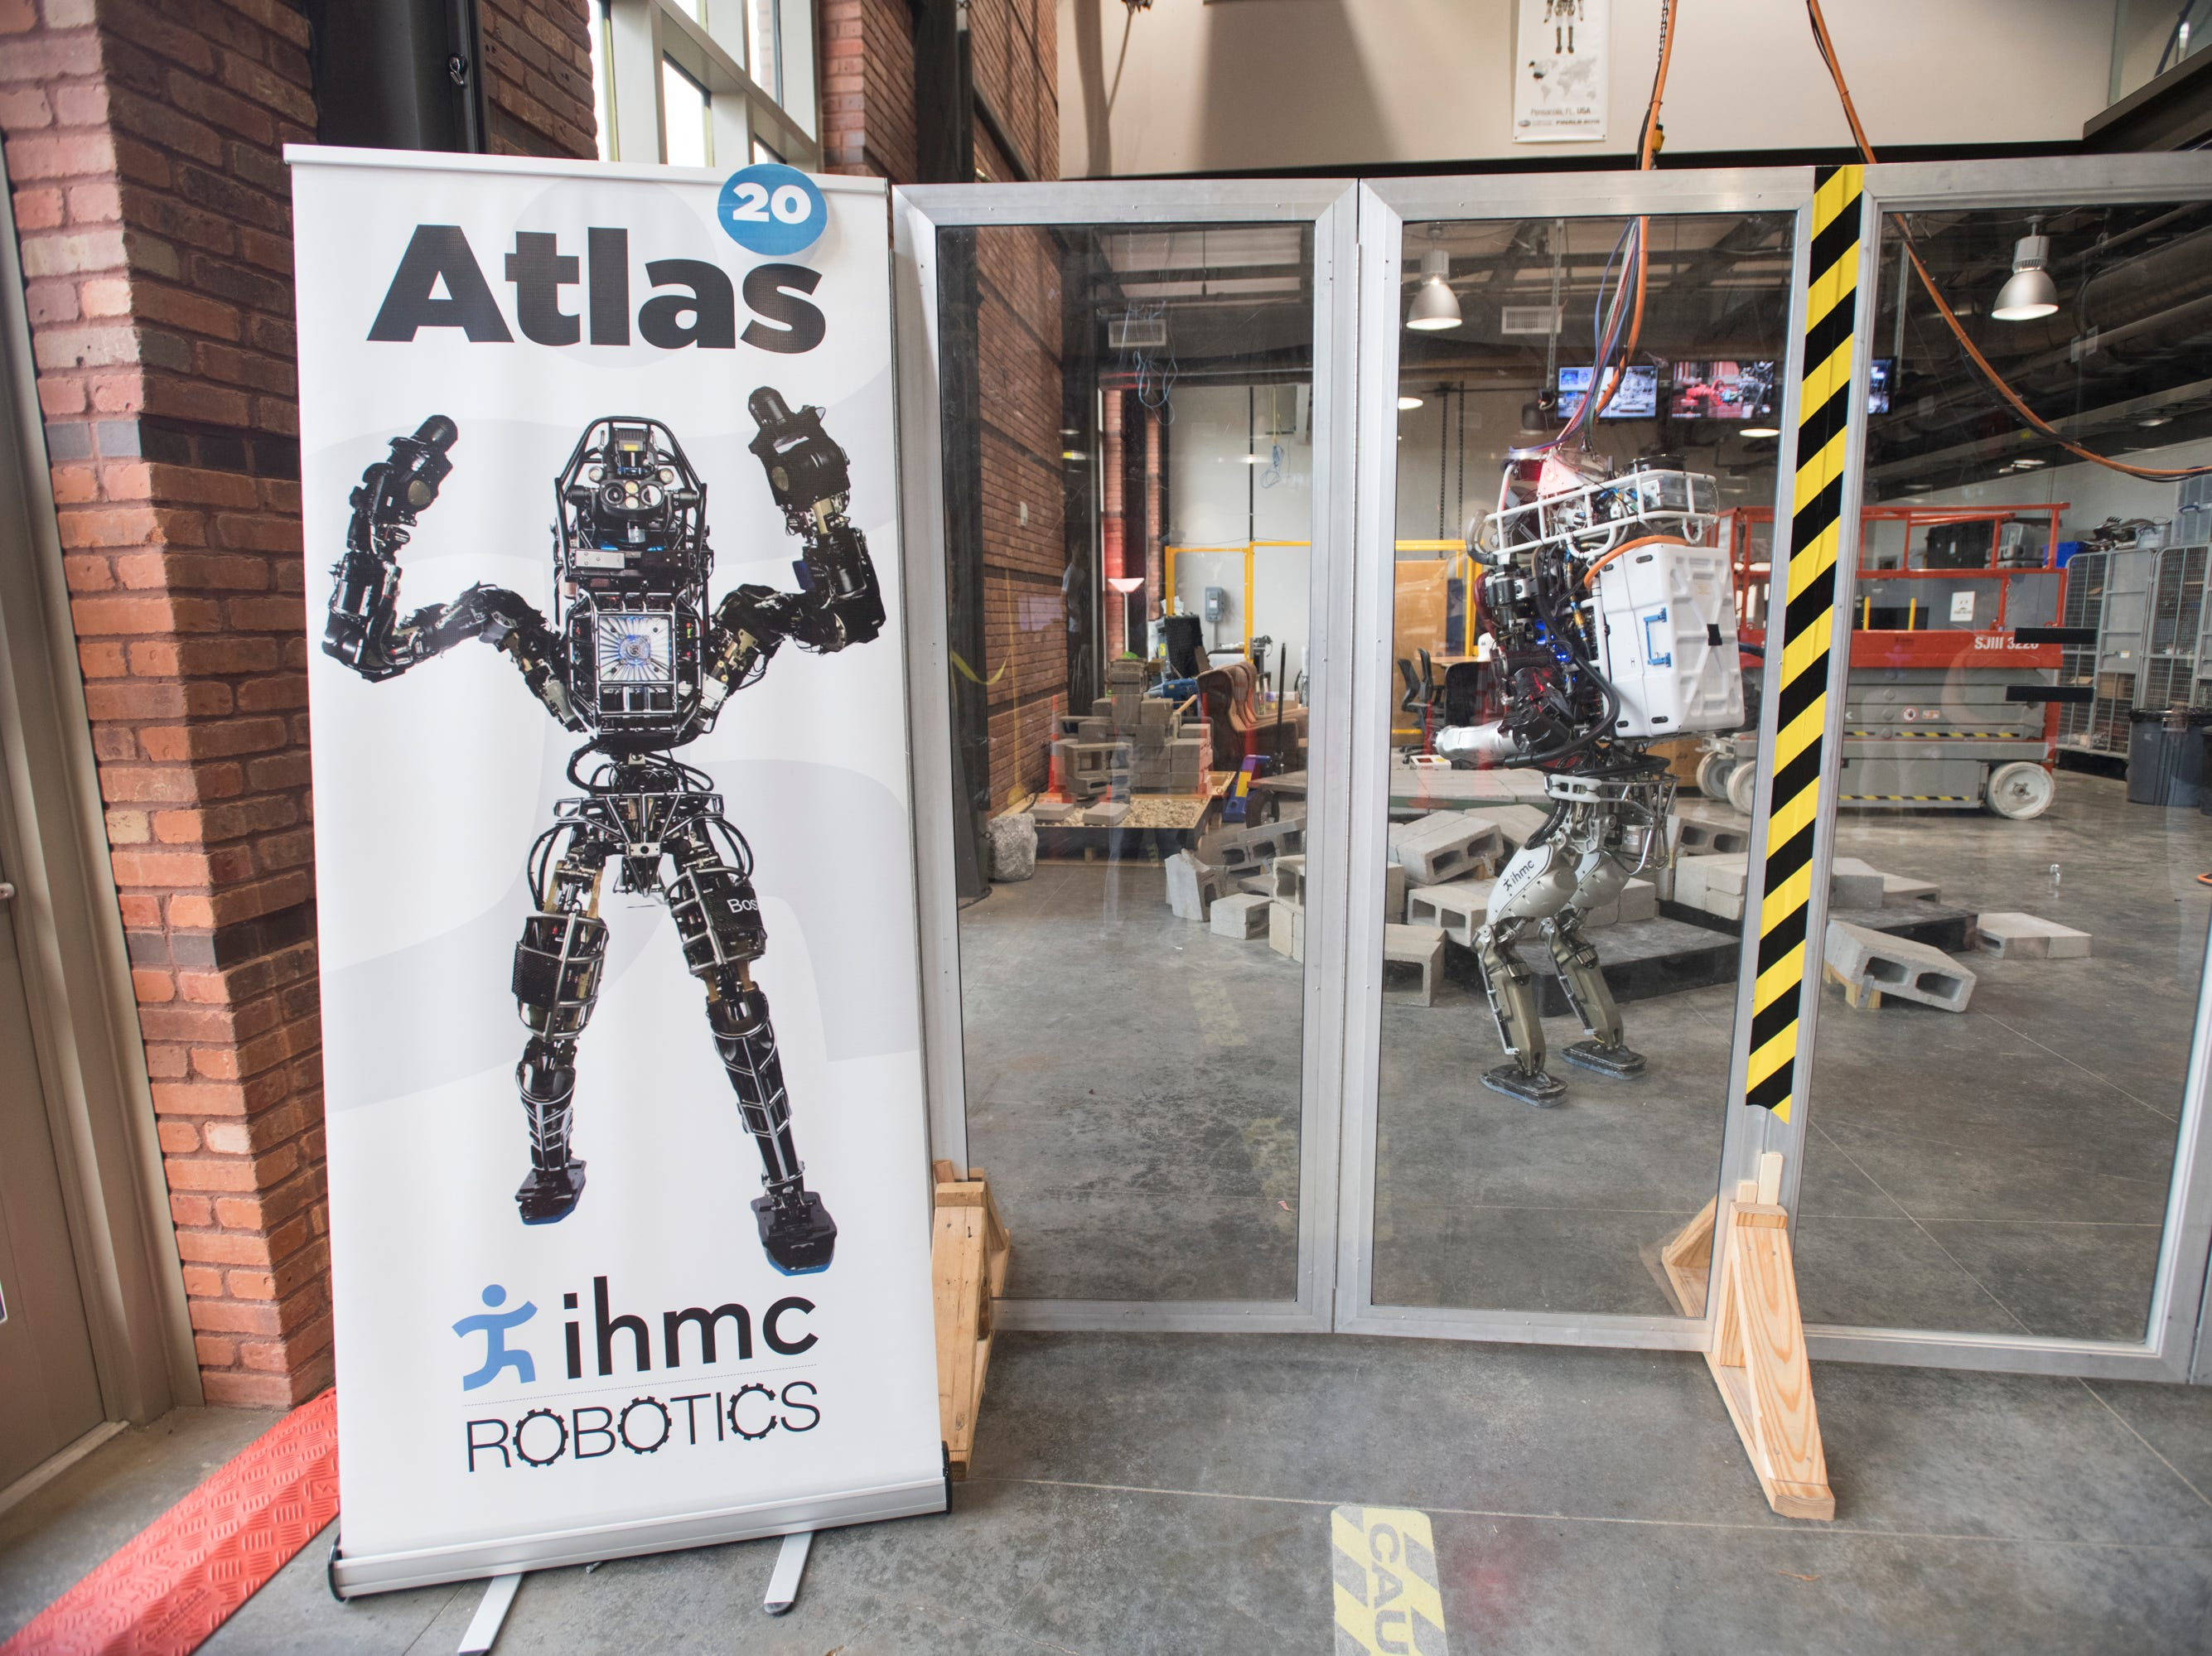 The Atlas robot on display during the IHMC Open House in downtown Pensacola on Friday, April 12, 2019.